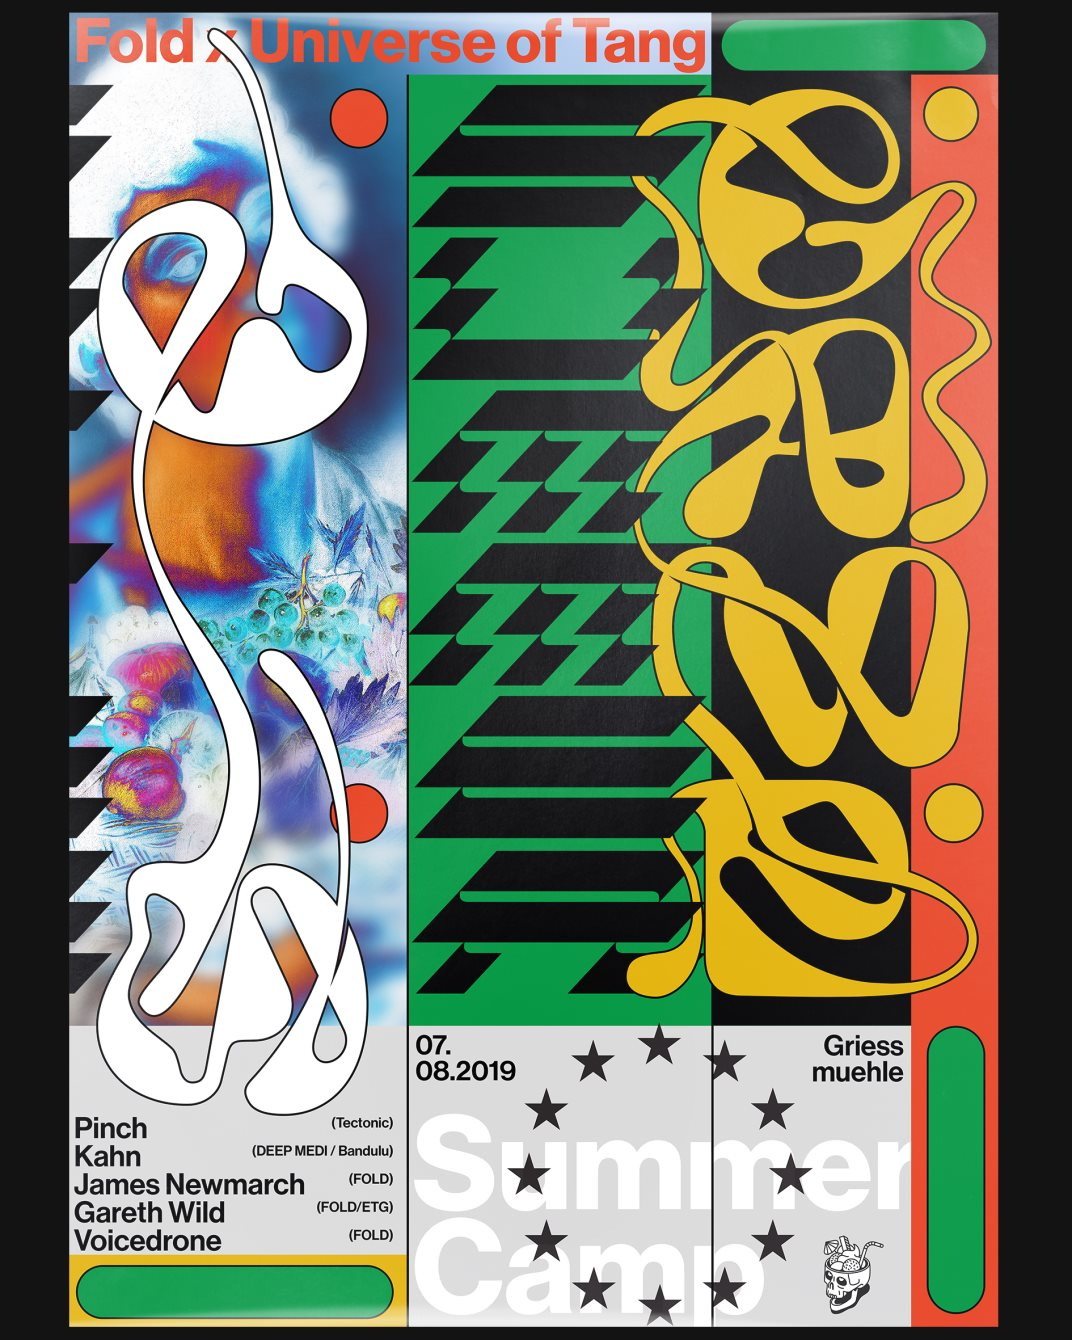 Summer Camp: FOLD x Universe of Tang - Flyer front